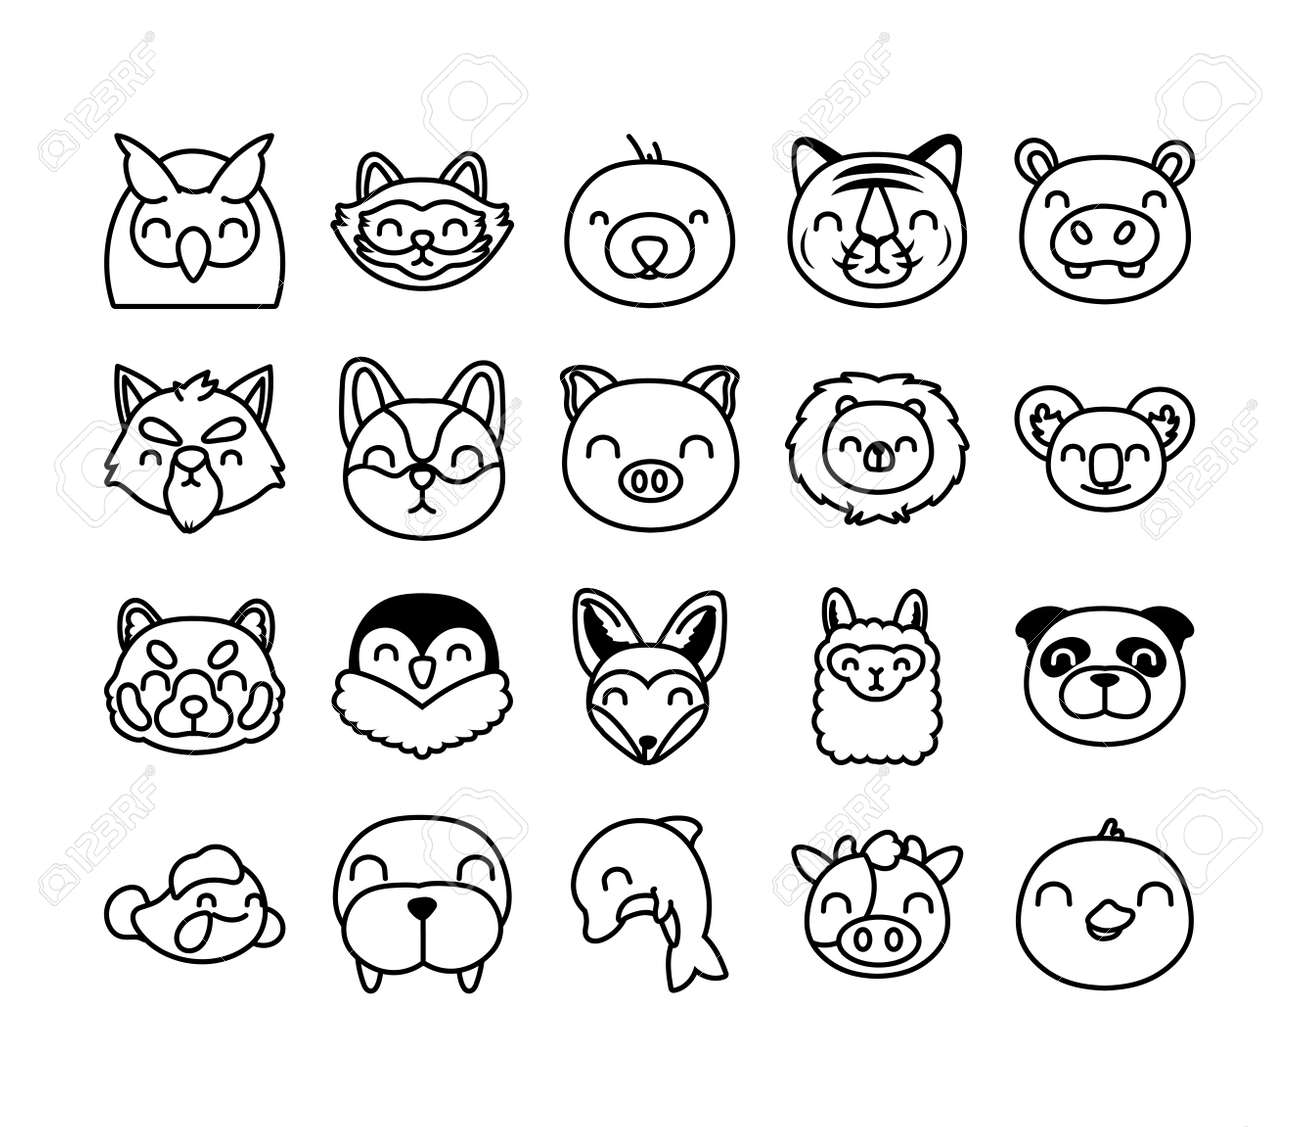 bundle of cute animals characters vector illustration design - 156988475